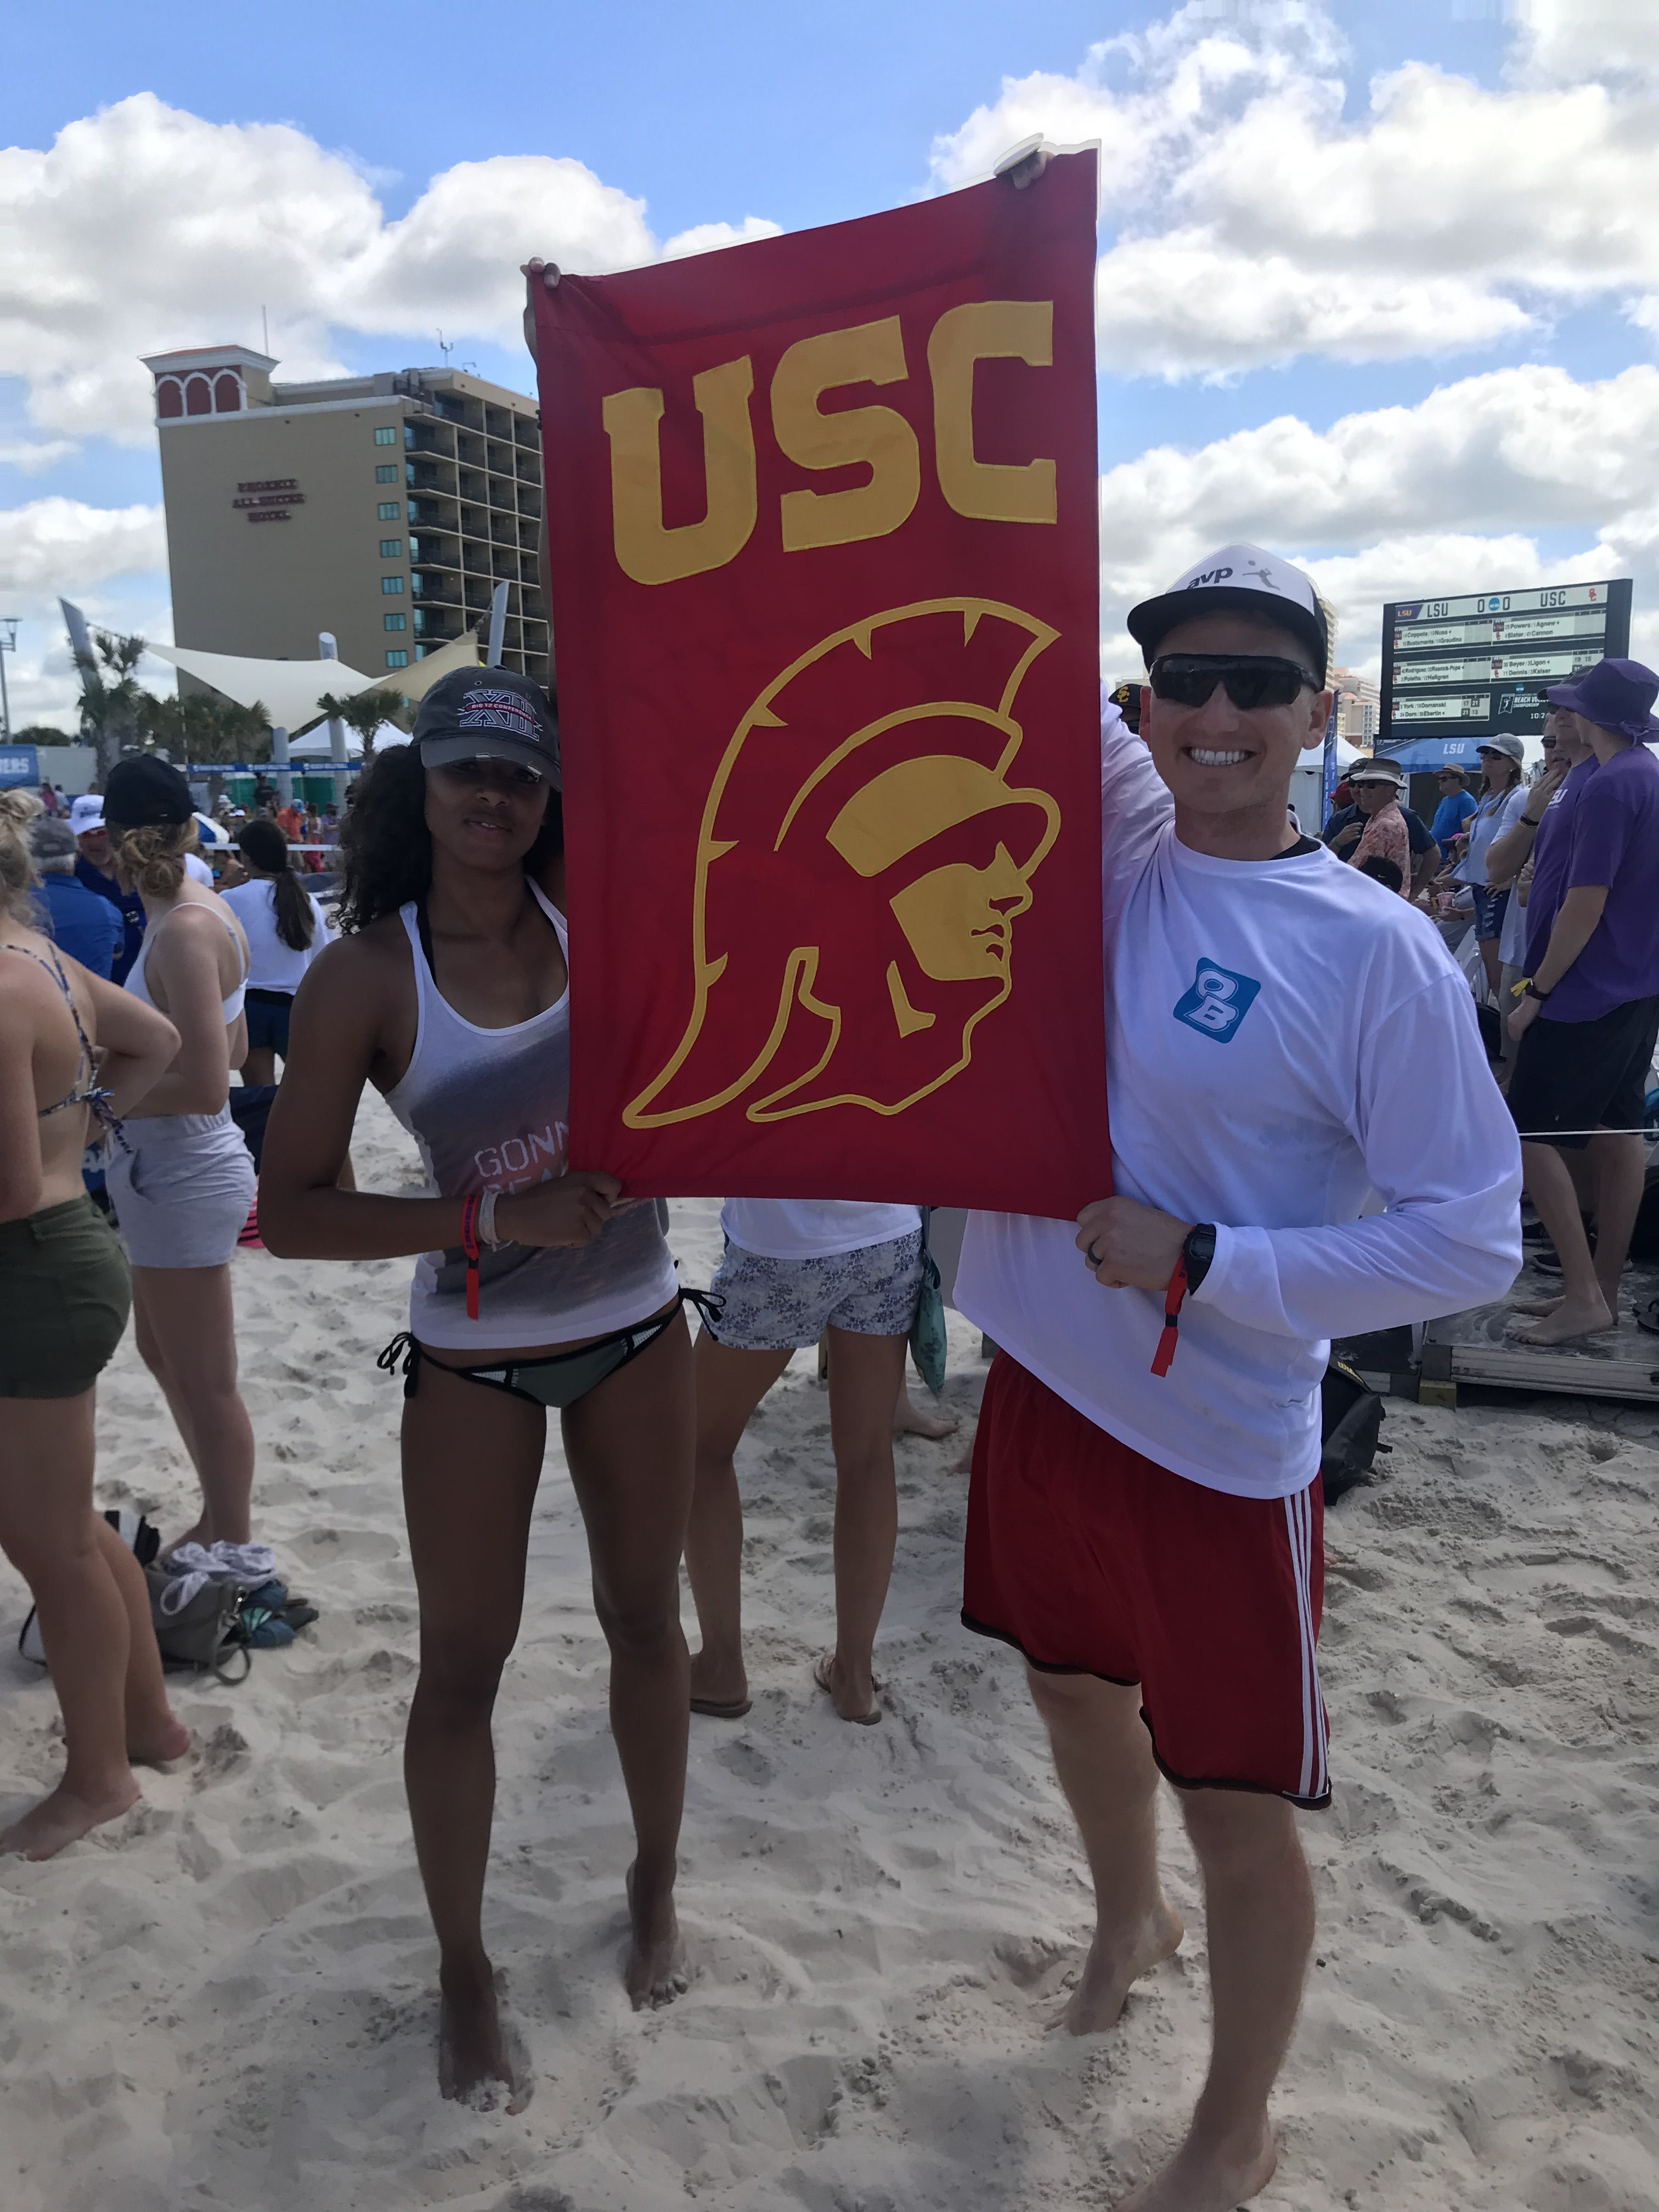 Usc Fans At The 2019 Ncaa Beach Volleyball Championship Beach Volleyball Usc Volleyball